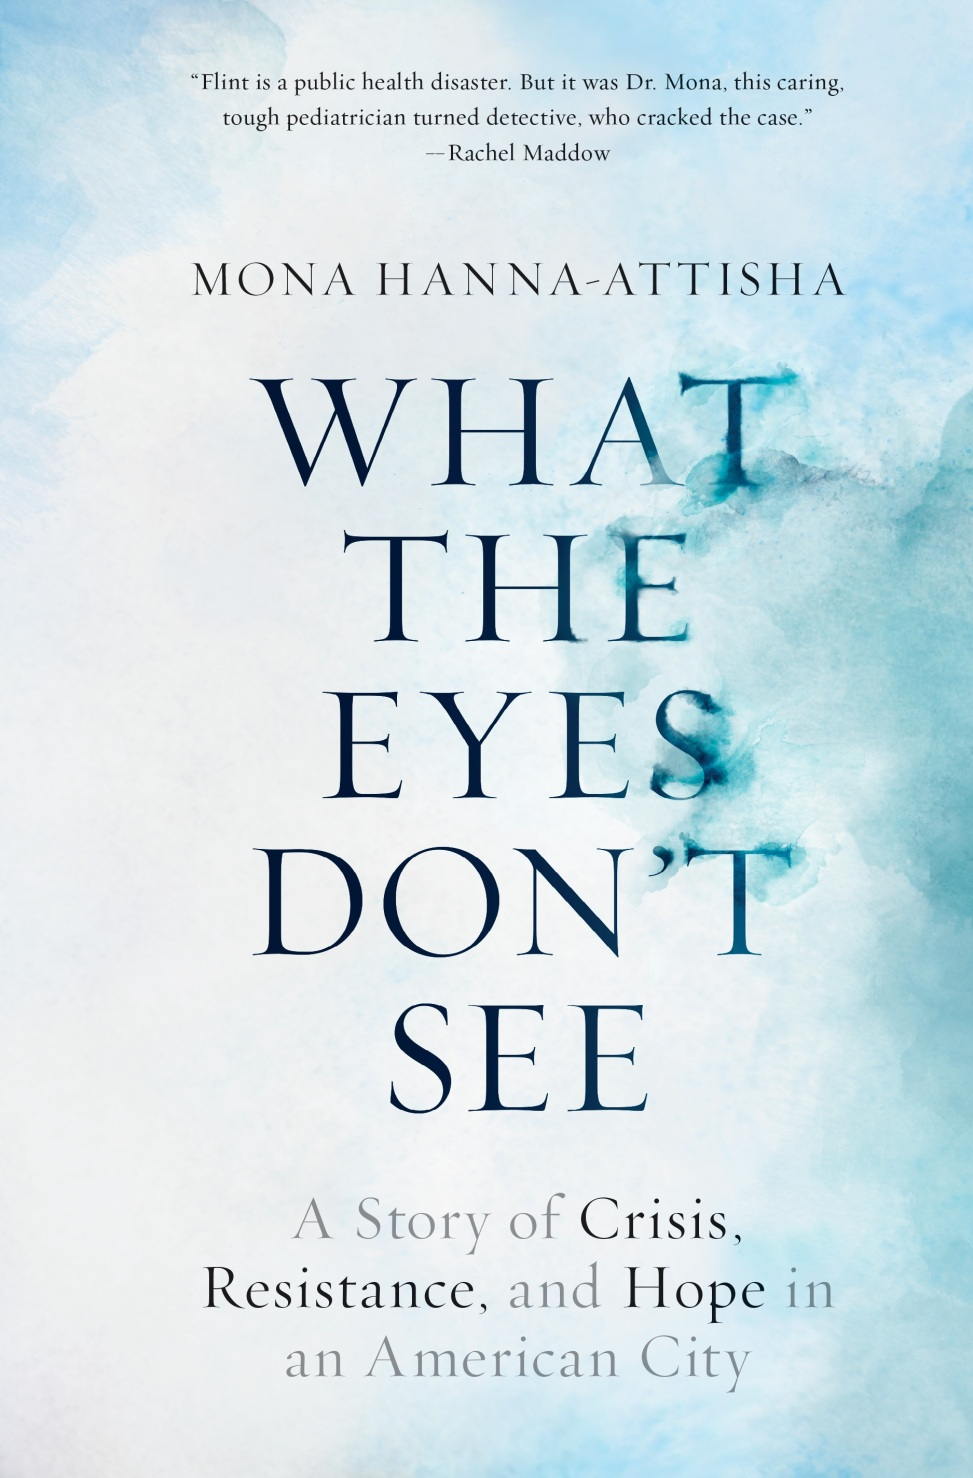 WHAT THE EYES DON'T SEE by Mona Hanna-Attisha